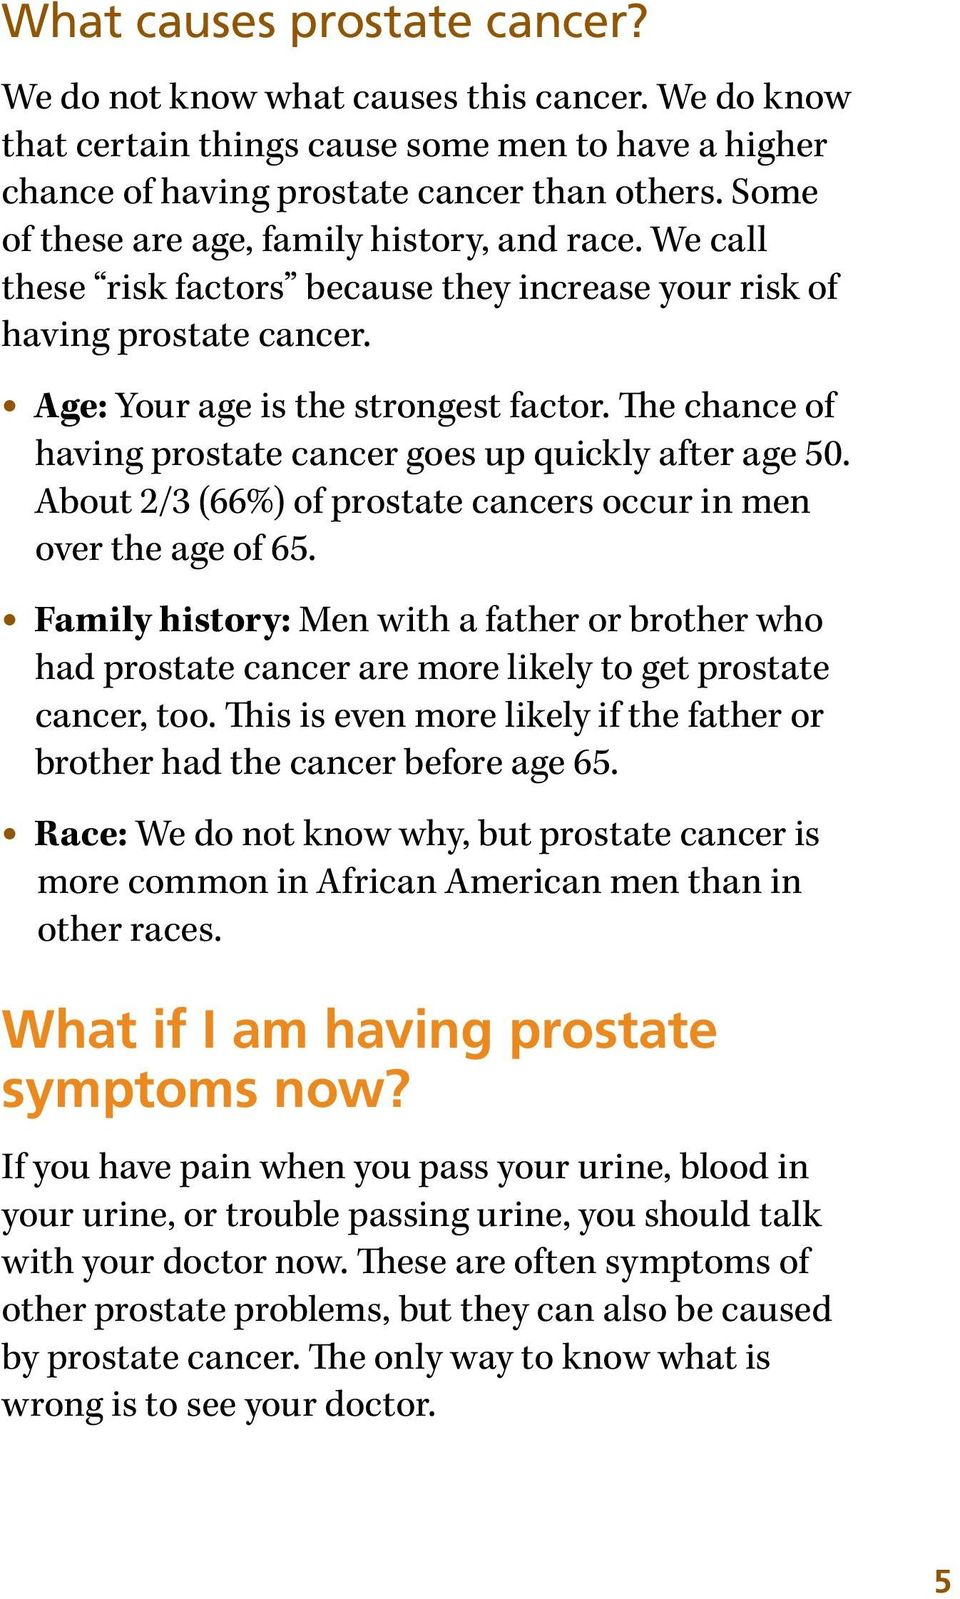 The chance of having prostate cancer goes up quickly after age 50. About 2/3 (66%) of prostate cancers occur in men over the age of 65.